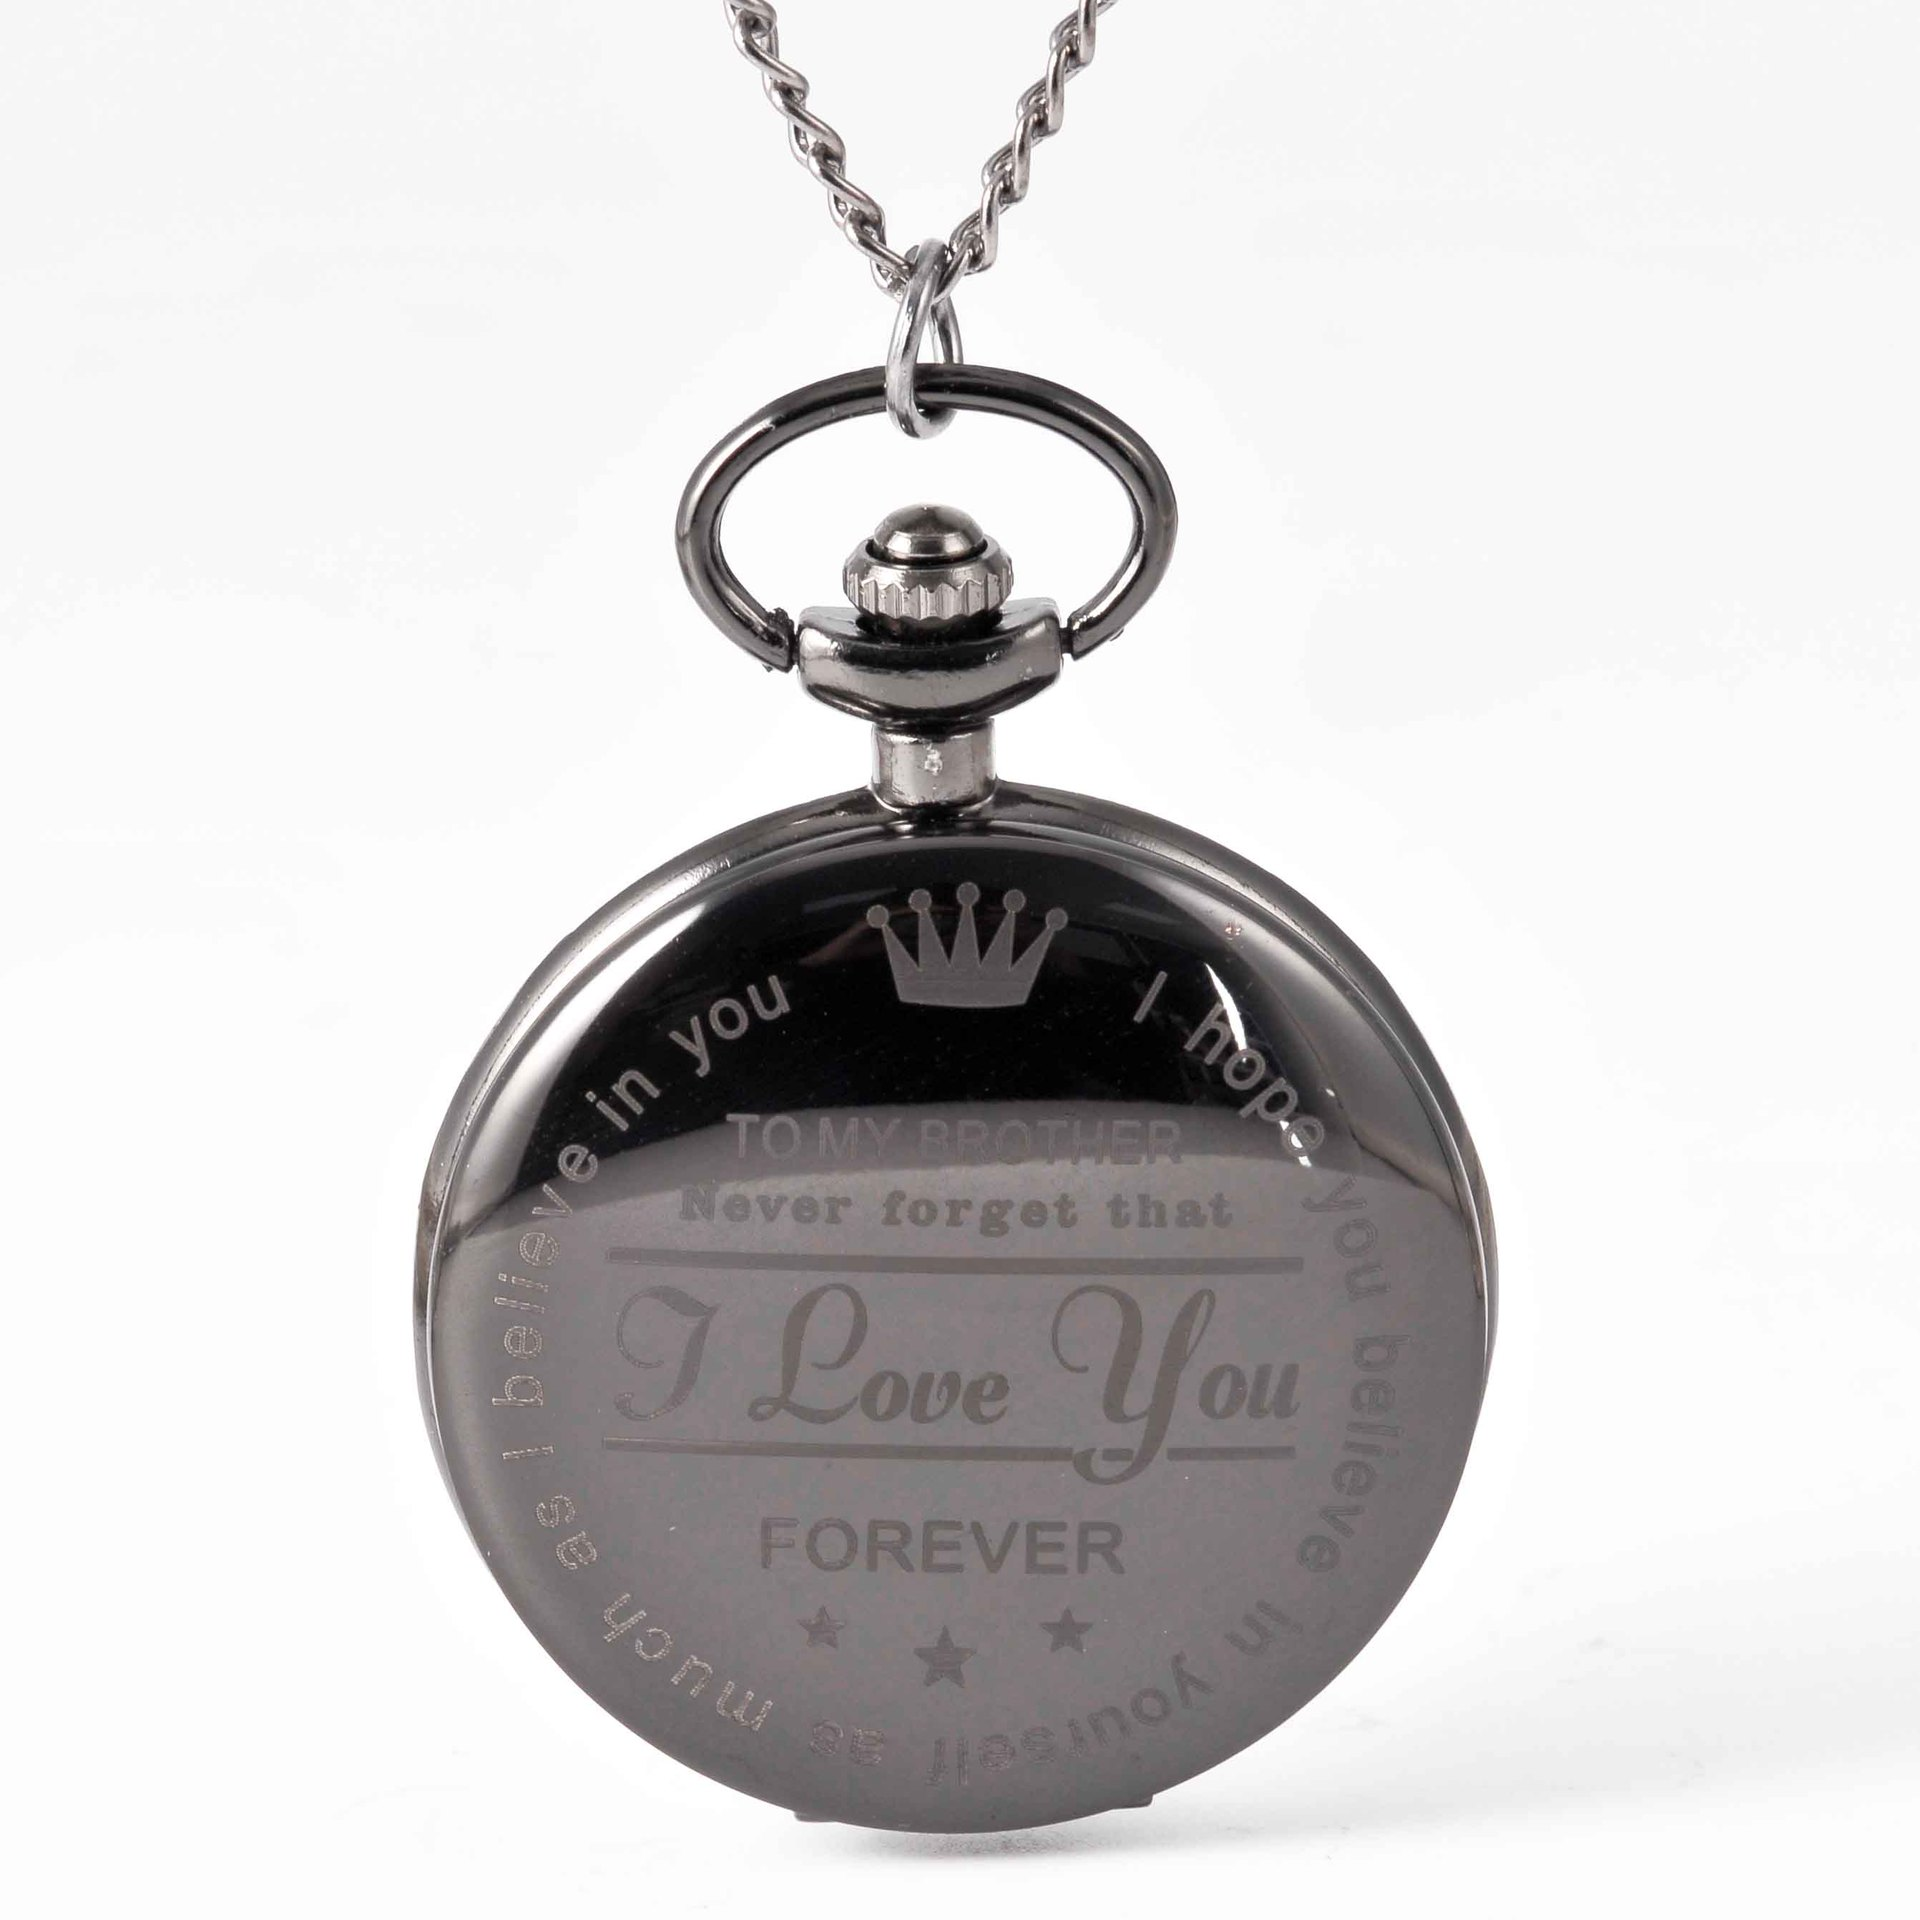 Pocket & Fob Watches  To My Brother  Pocket Watch Necklace I Love You Forever Quartz Watch  for  Brother's Gift Watch